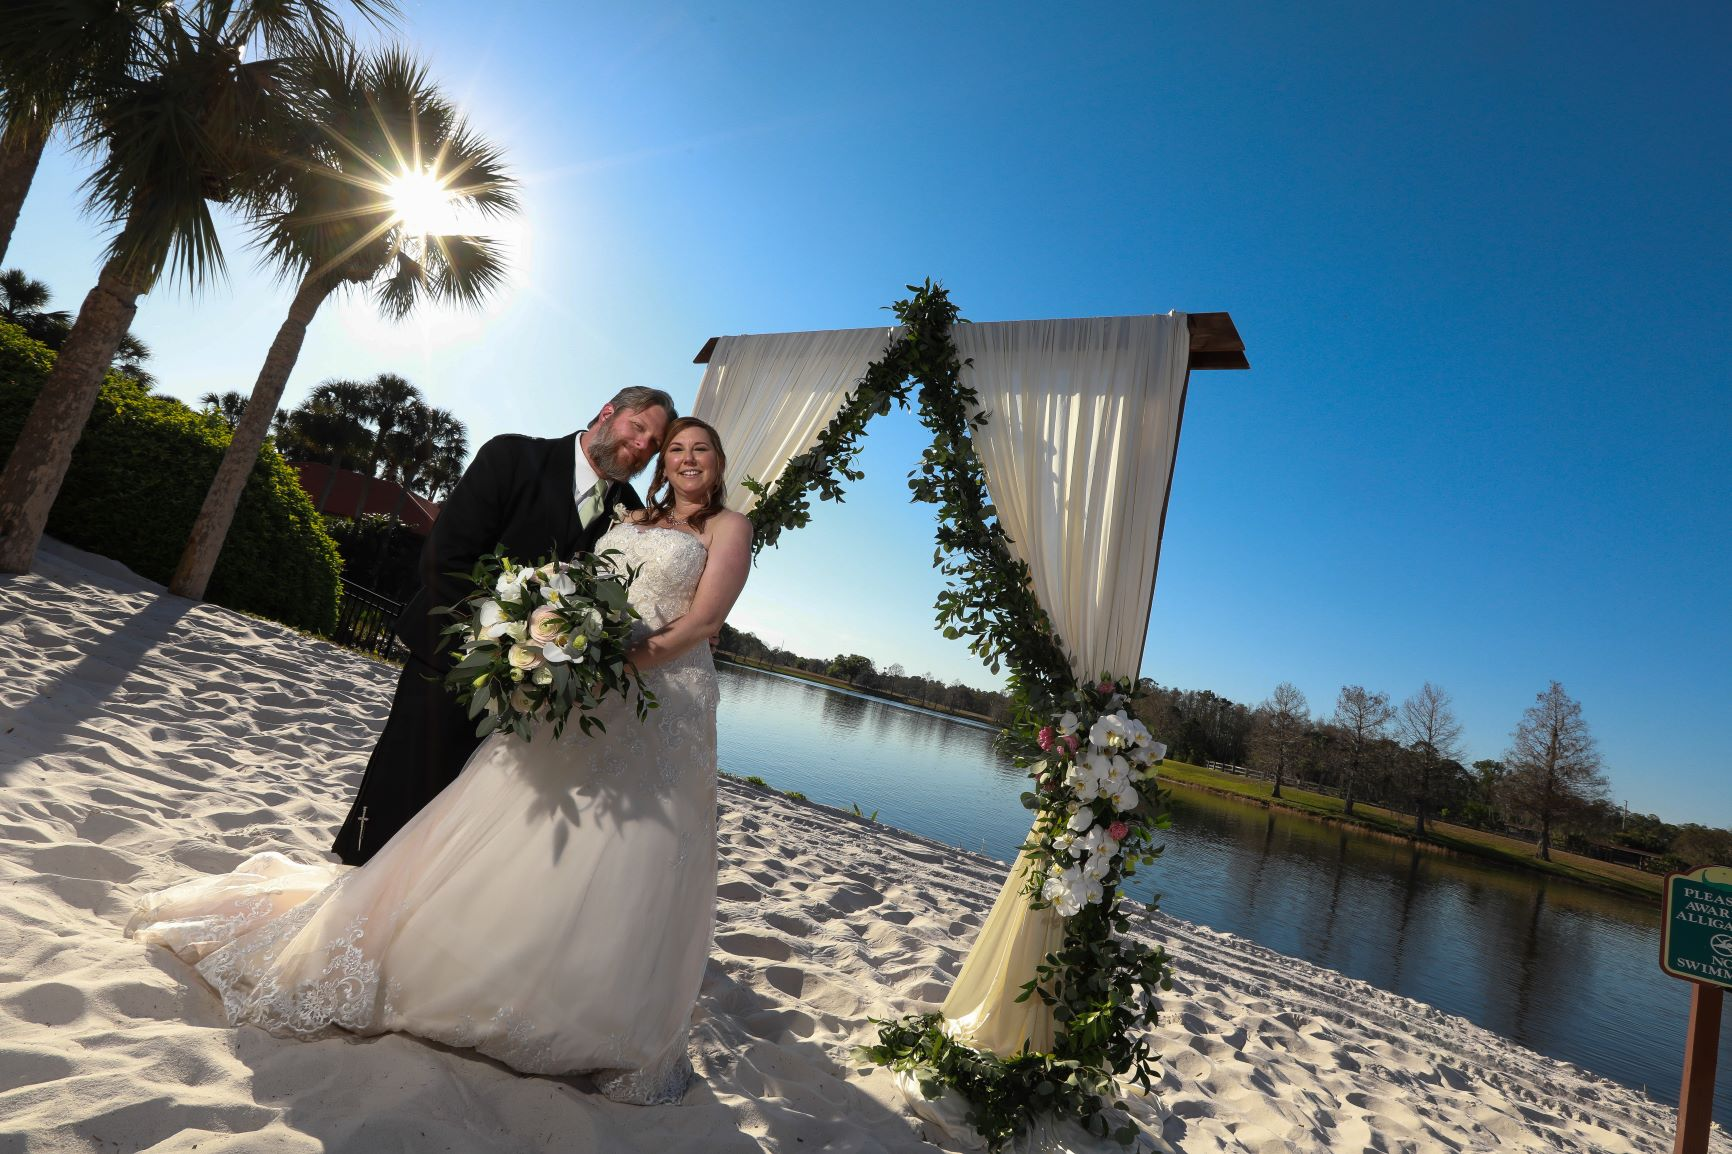 Orlando Wedding Packages | Angie and Ken at the Hyatt Regency Grand Cypress